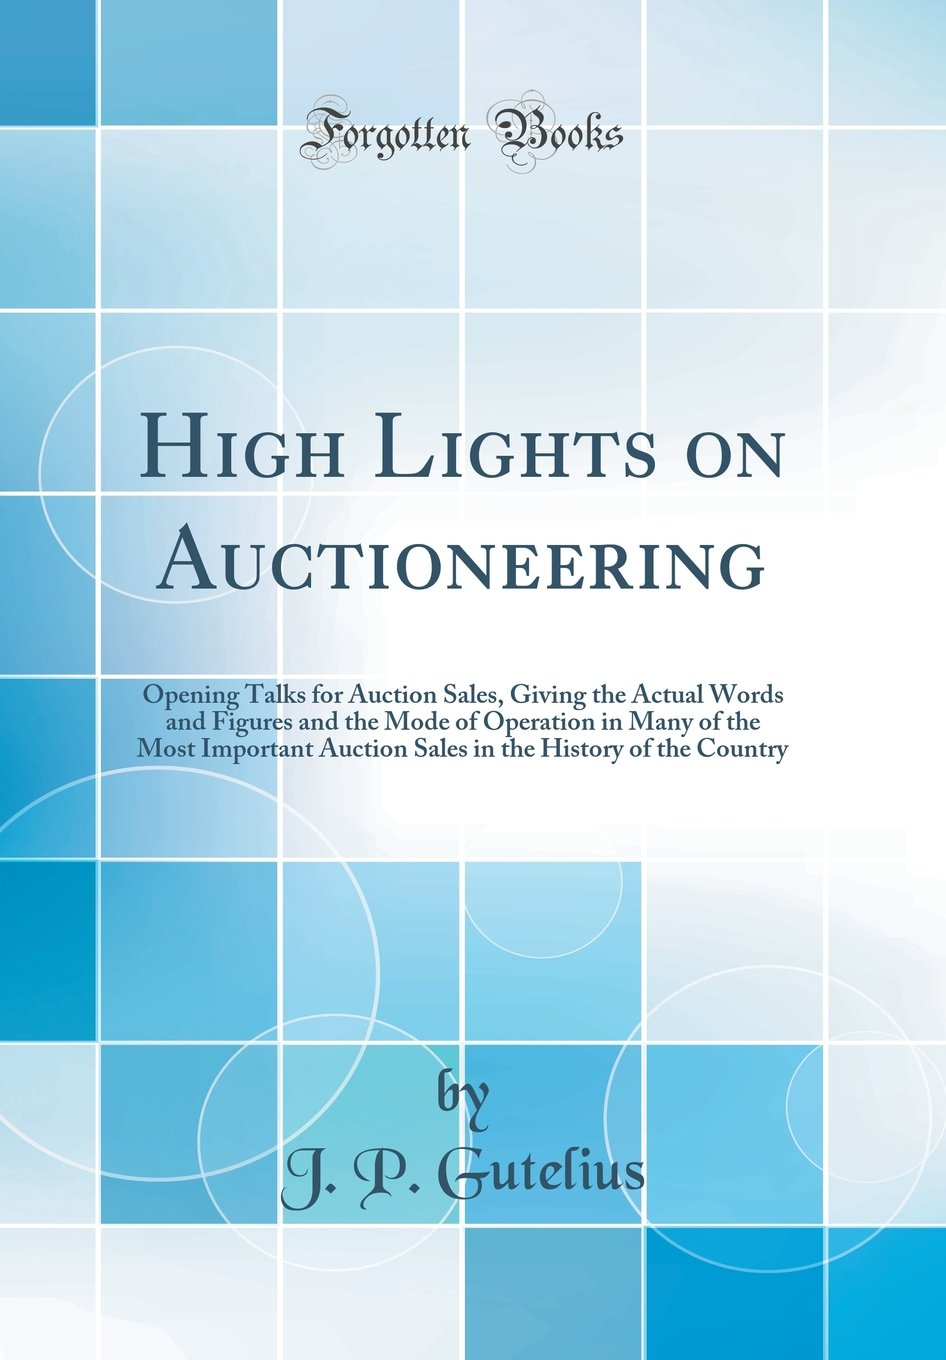 Download High Lights on Auctioneering: Opening Talks for Auction Sales, Giving the Actual Words and Figures and the Mode of Operation in Many of the Most ... the History of the Country (Classic Reprint) PDF